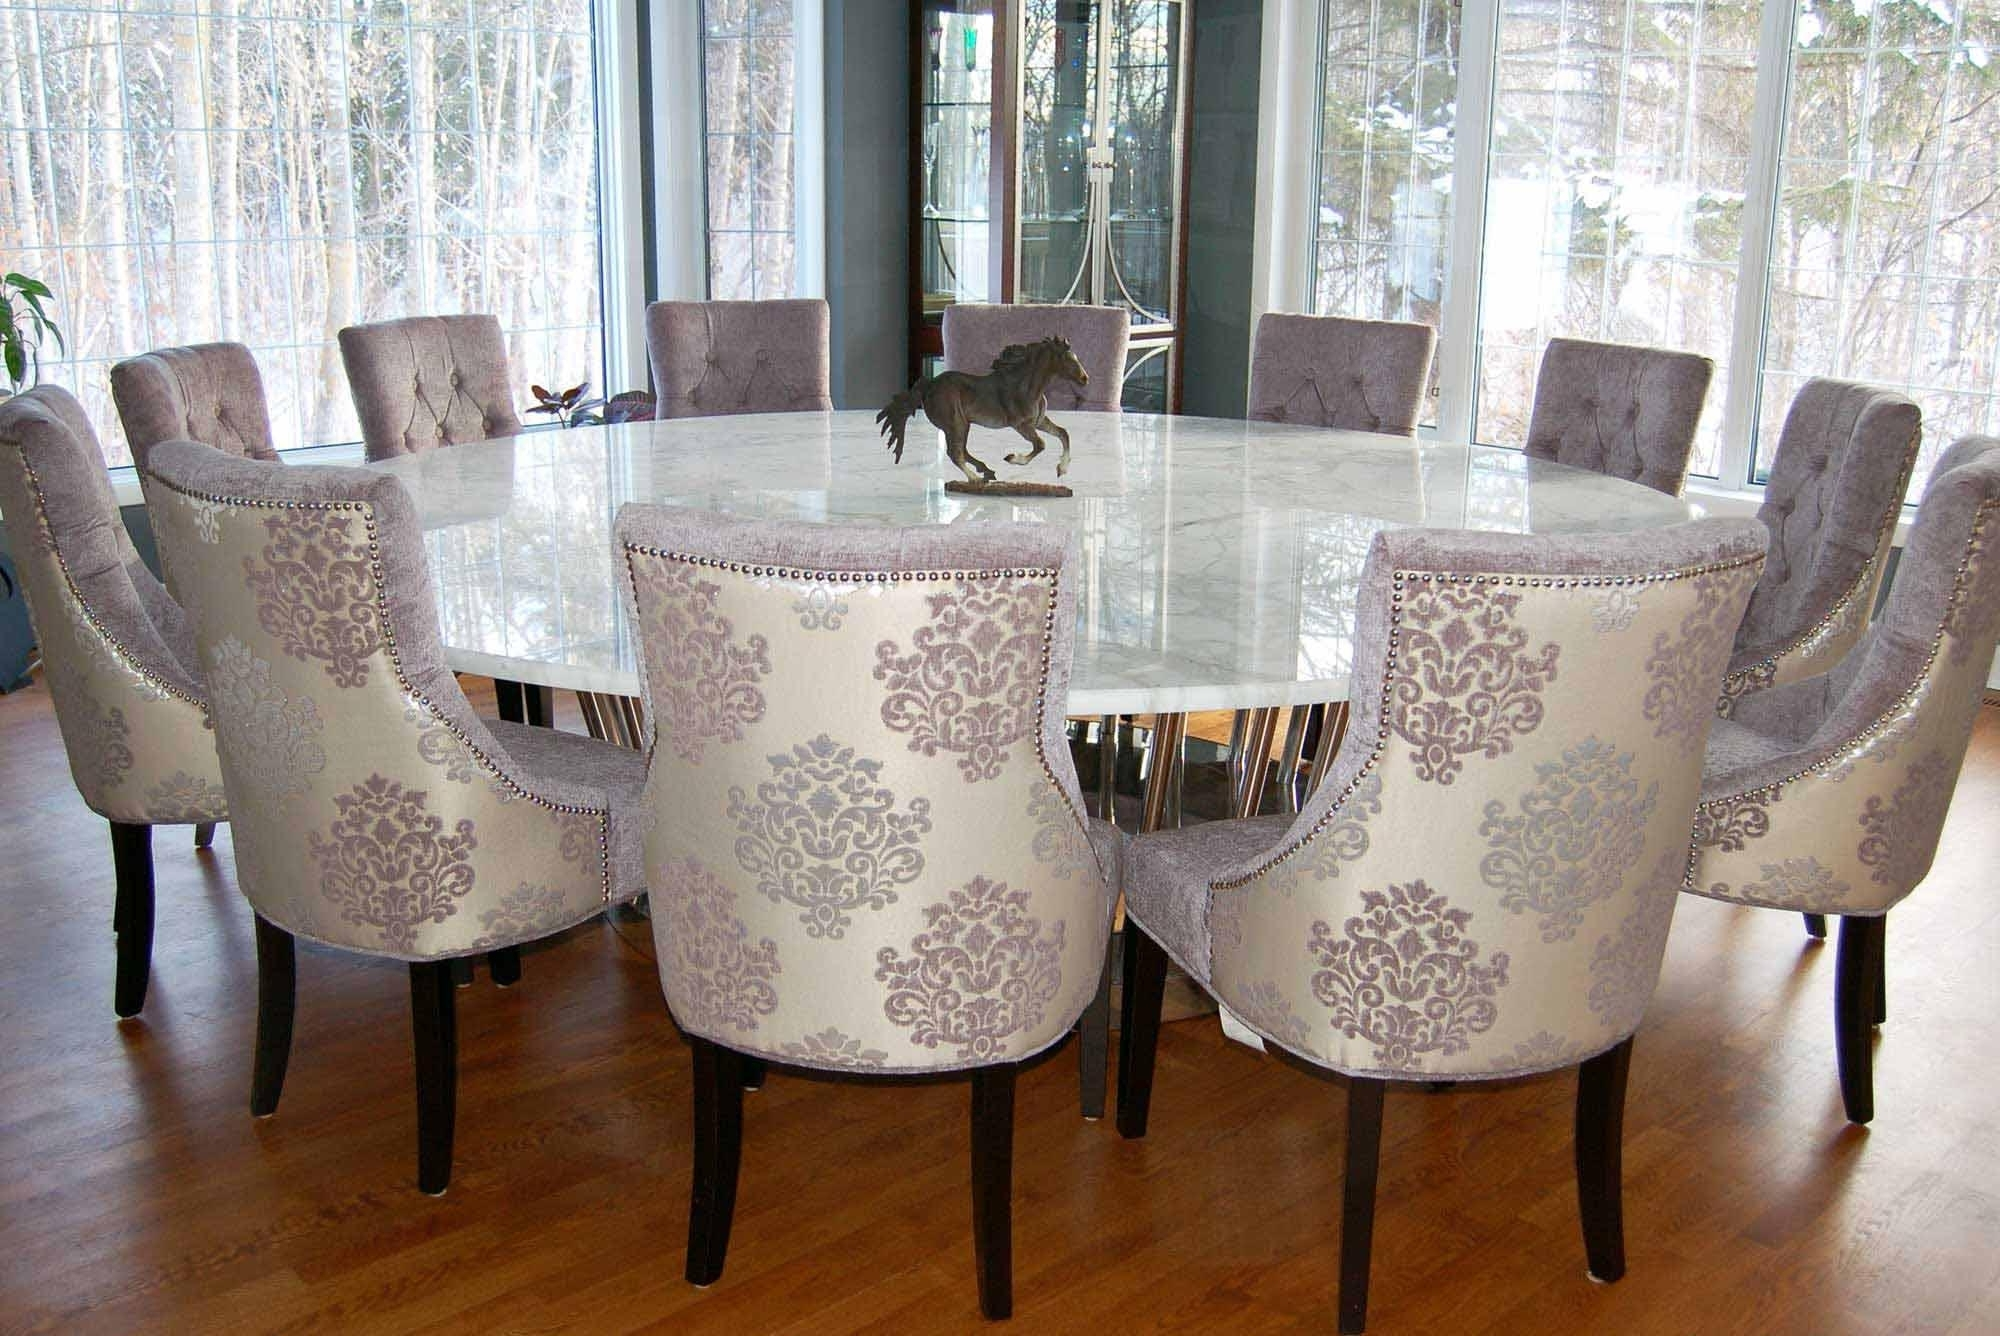 6 Person Round Dining Tables Intended For Recent 12 Seater Round Dining Table And Chairs – Round Table Ideas (View 3 of 25)